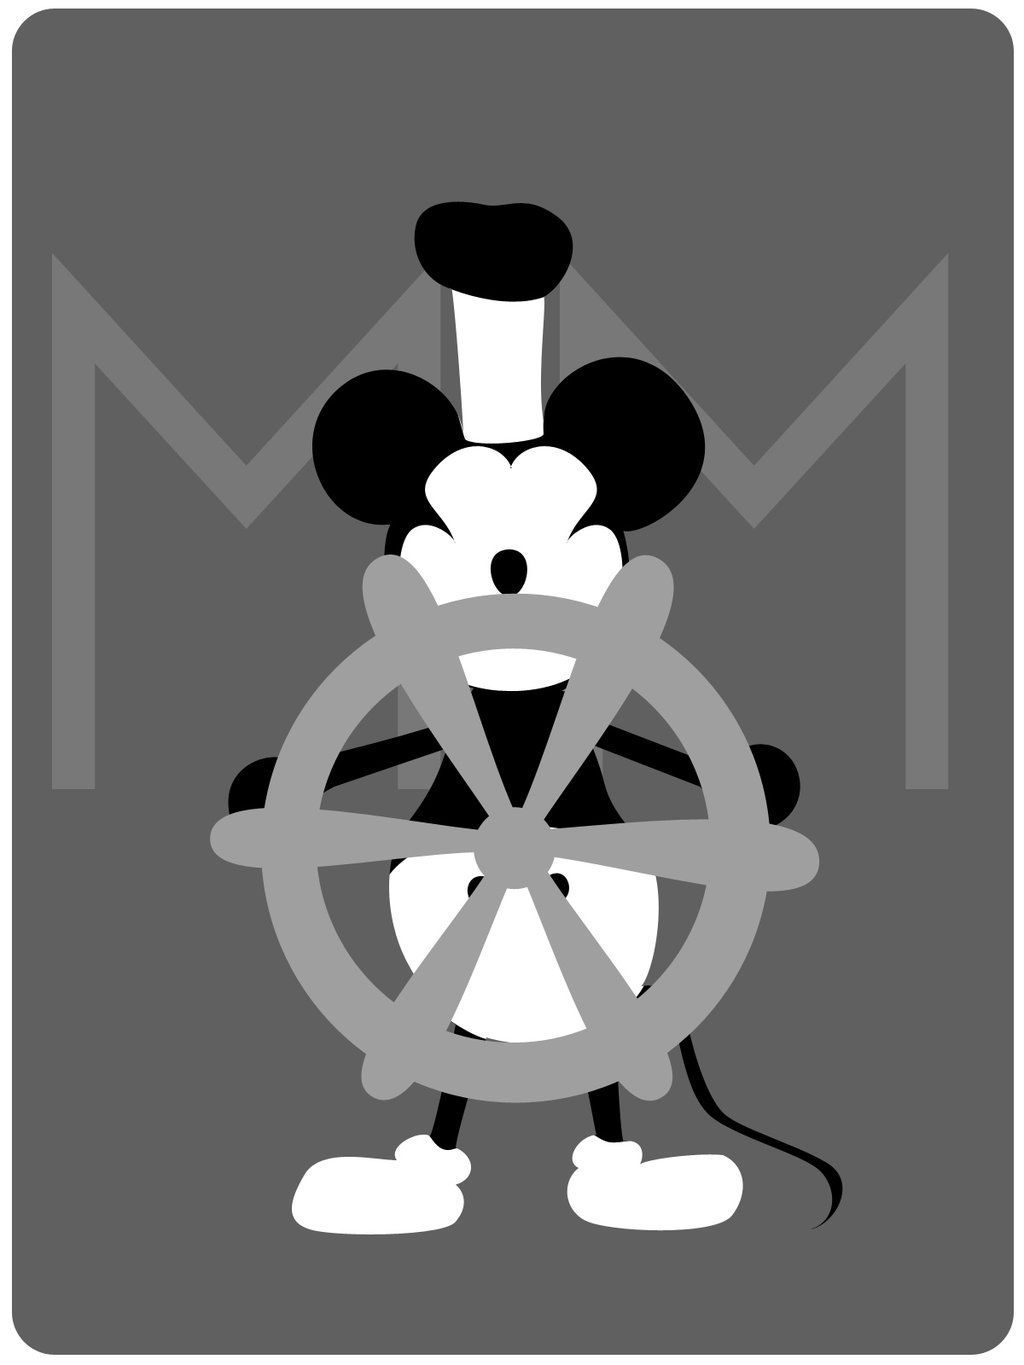 Mickey Mouse on steamboat  Willie